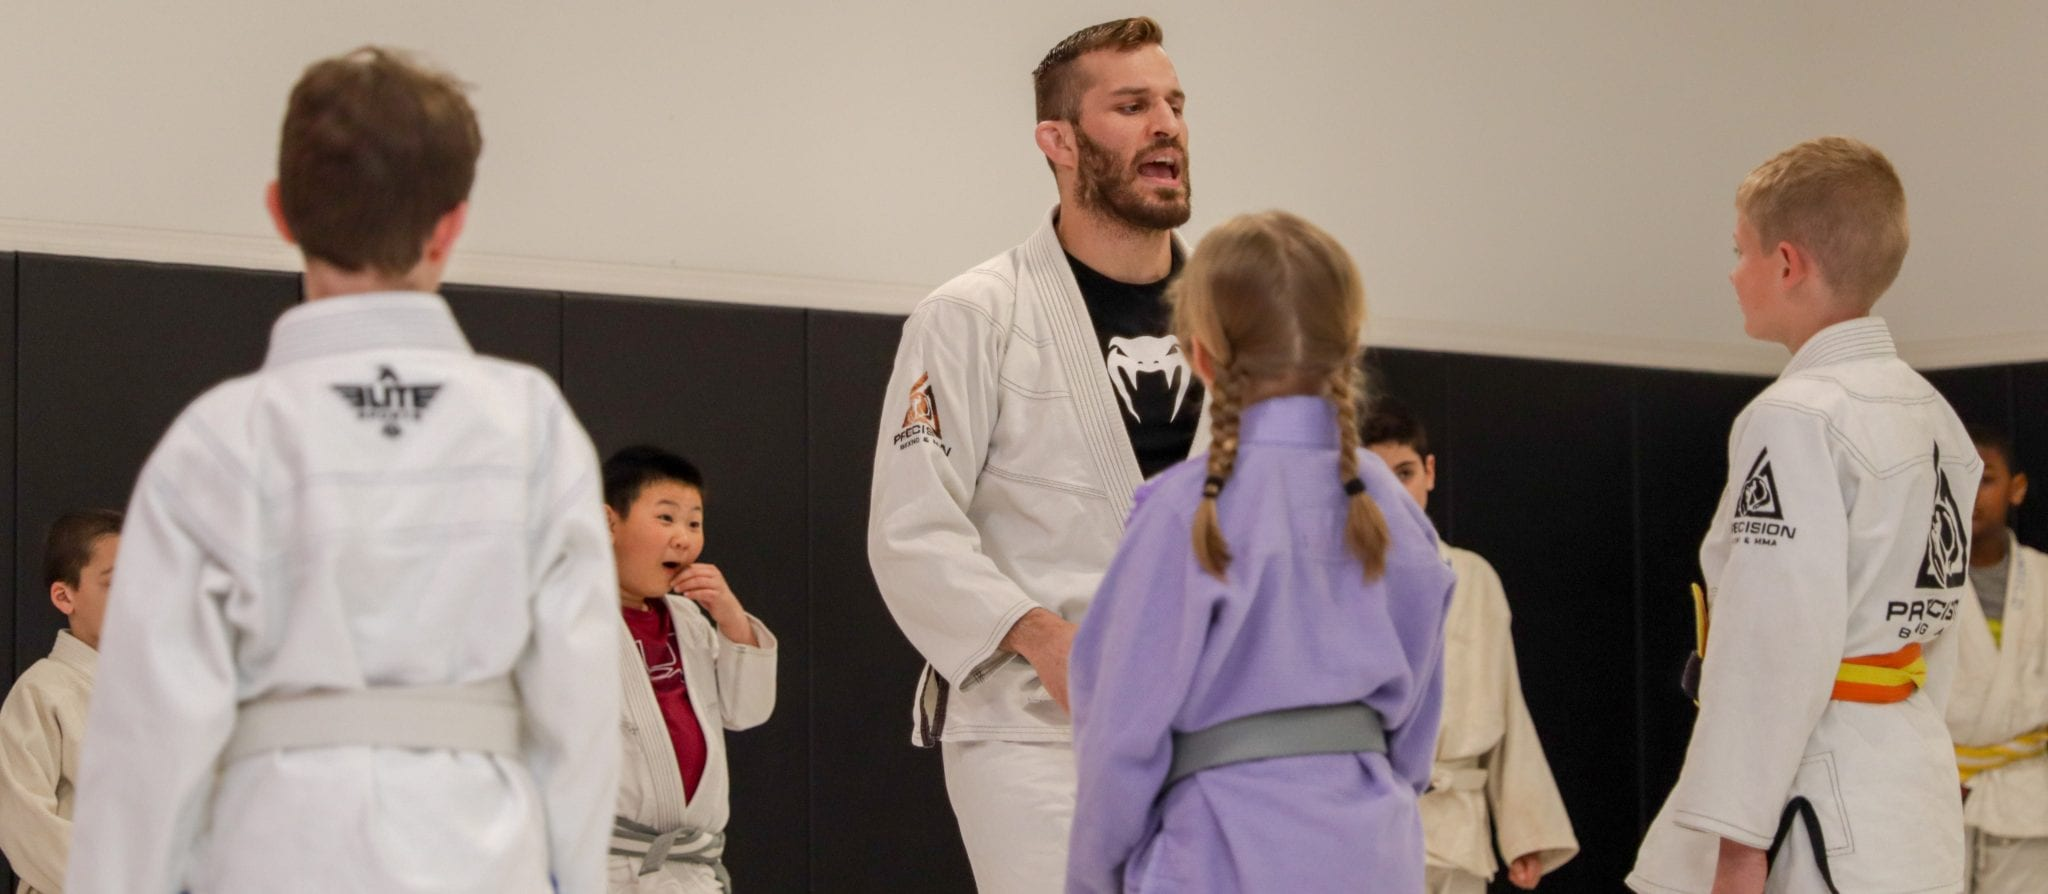 brian teaching kids classes at precision mma